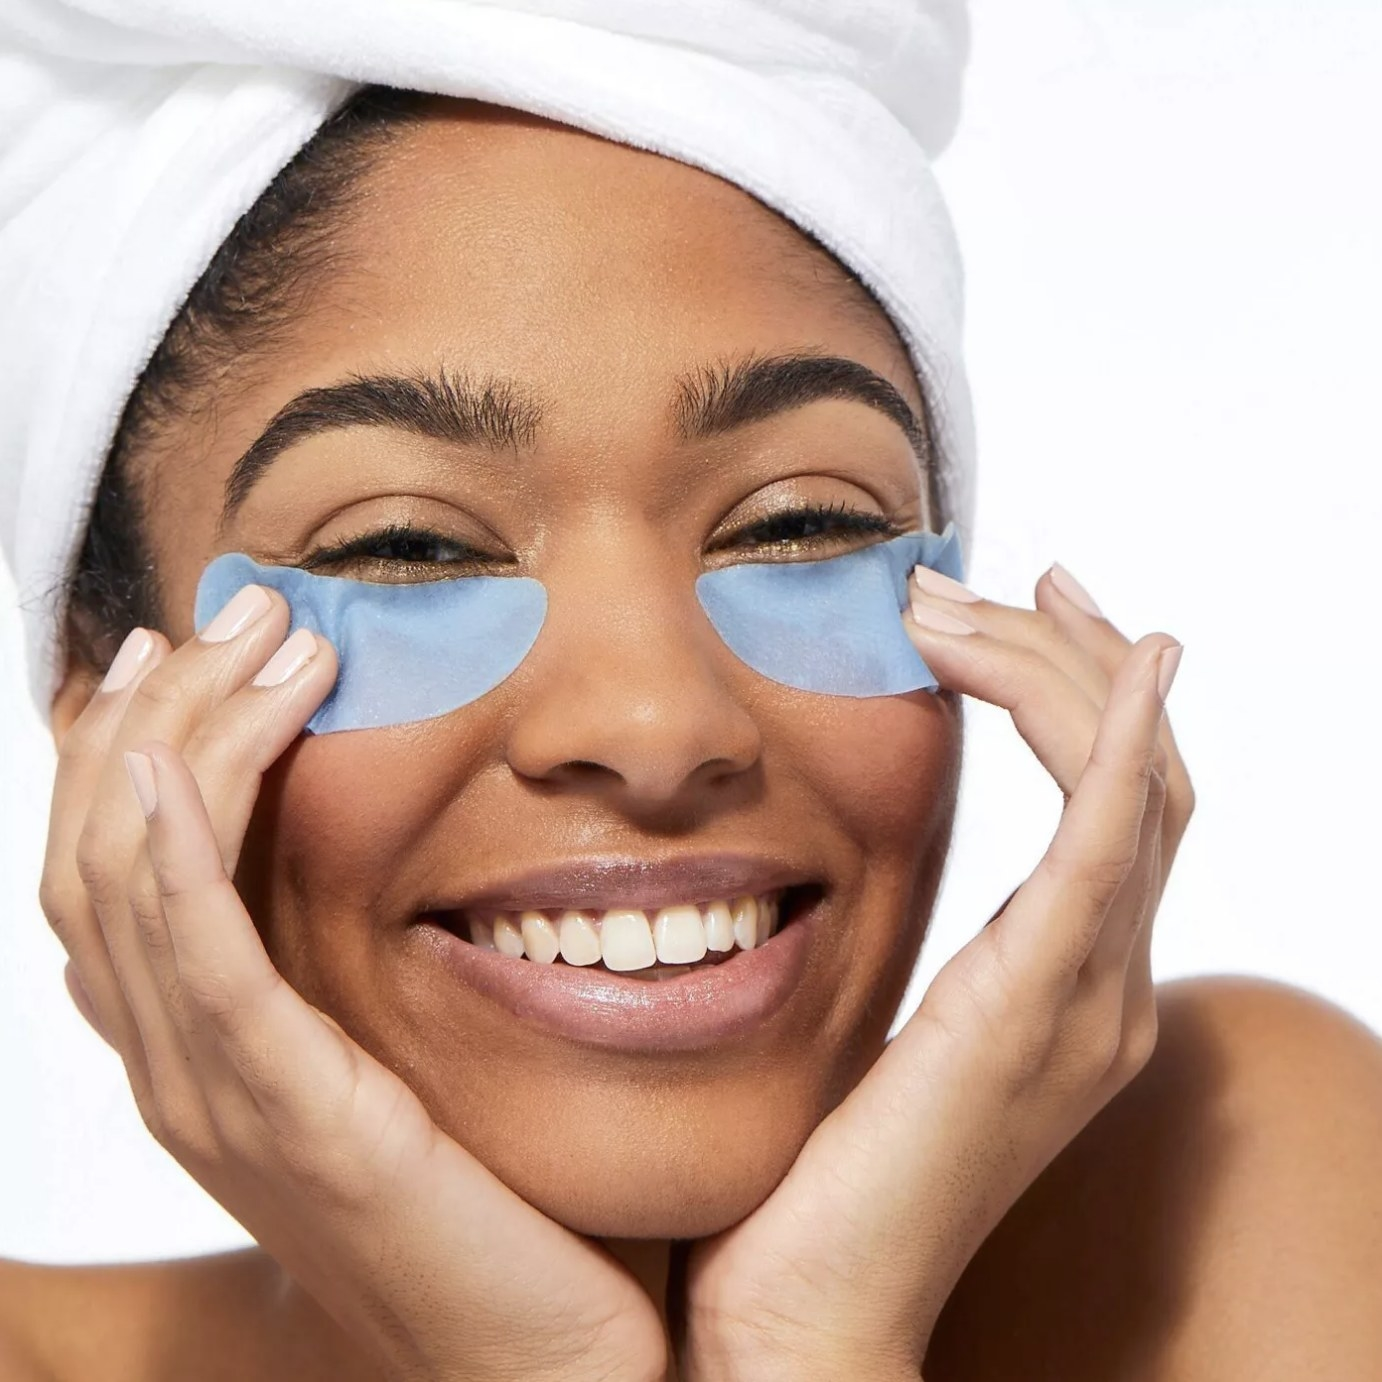 Model is wearing light blue under-eye patches on their face